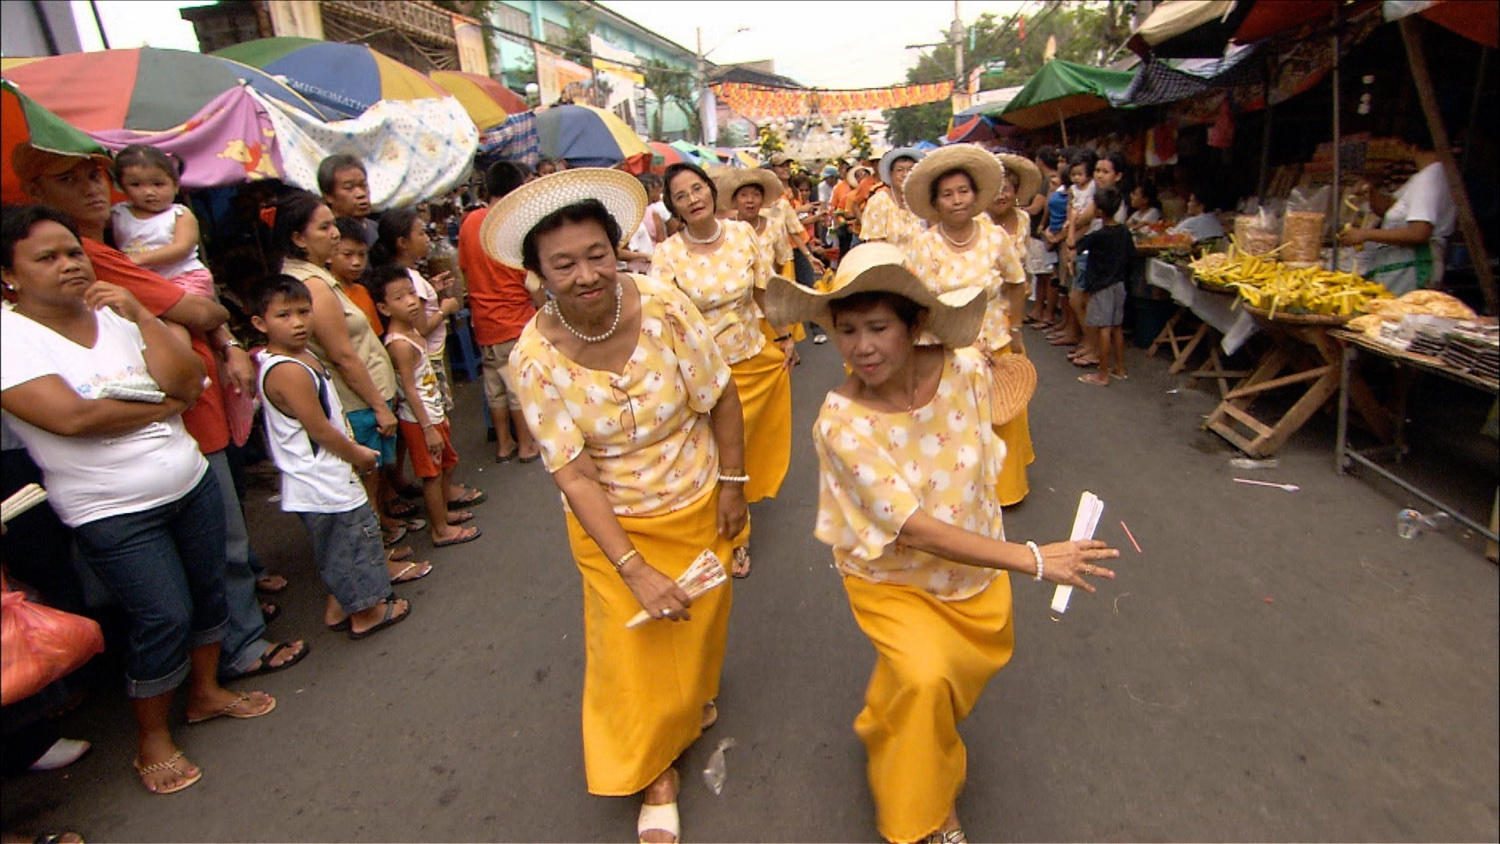 205_Philippines_yellow dancers.jpg